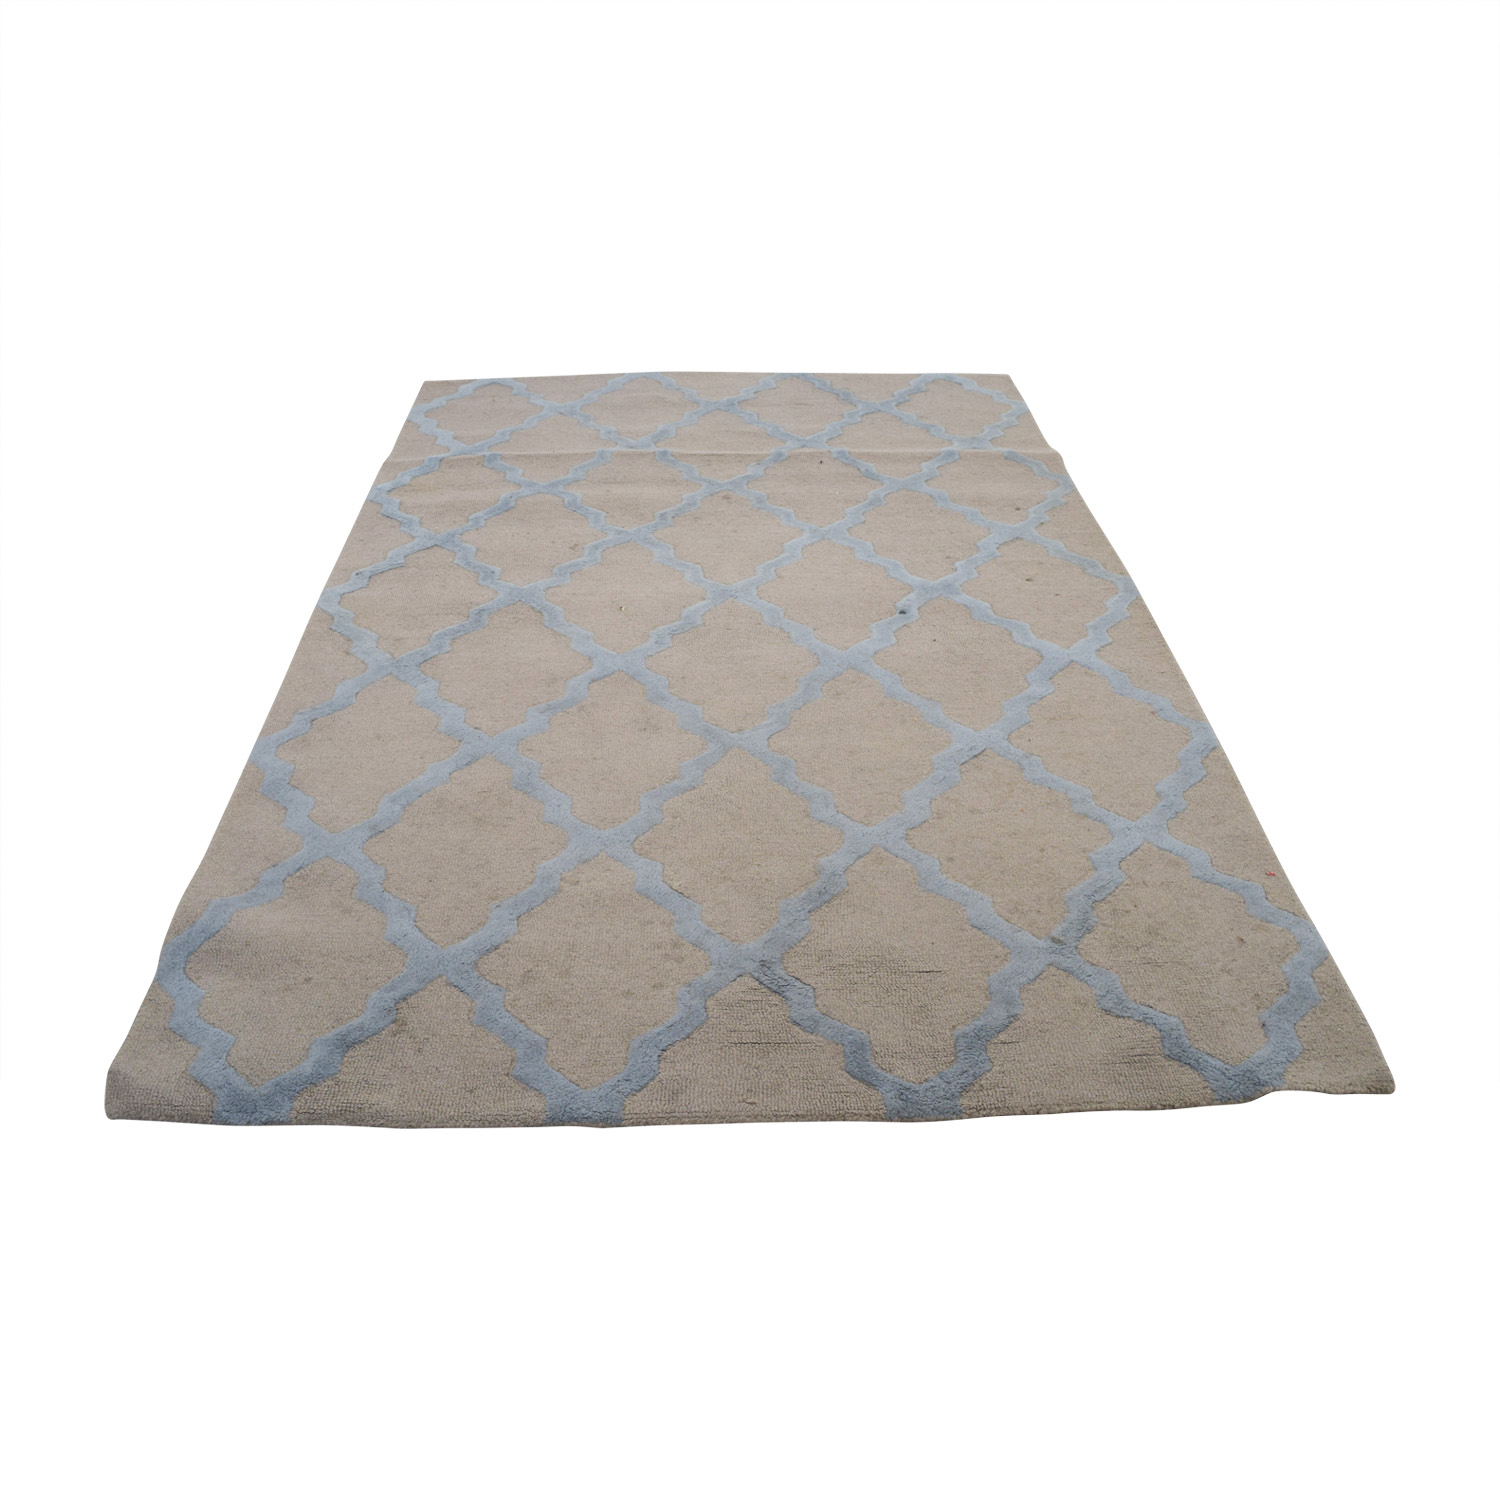 products ivory rectangle gray geometric jaipur pattern rugs rug wool area modern